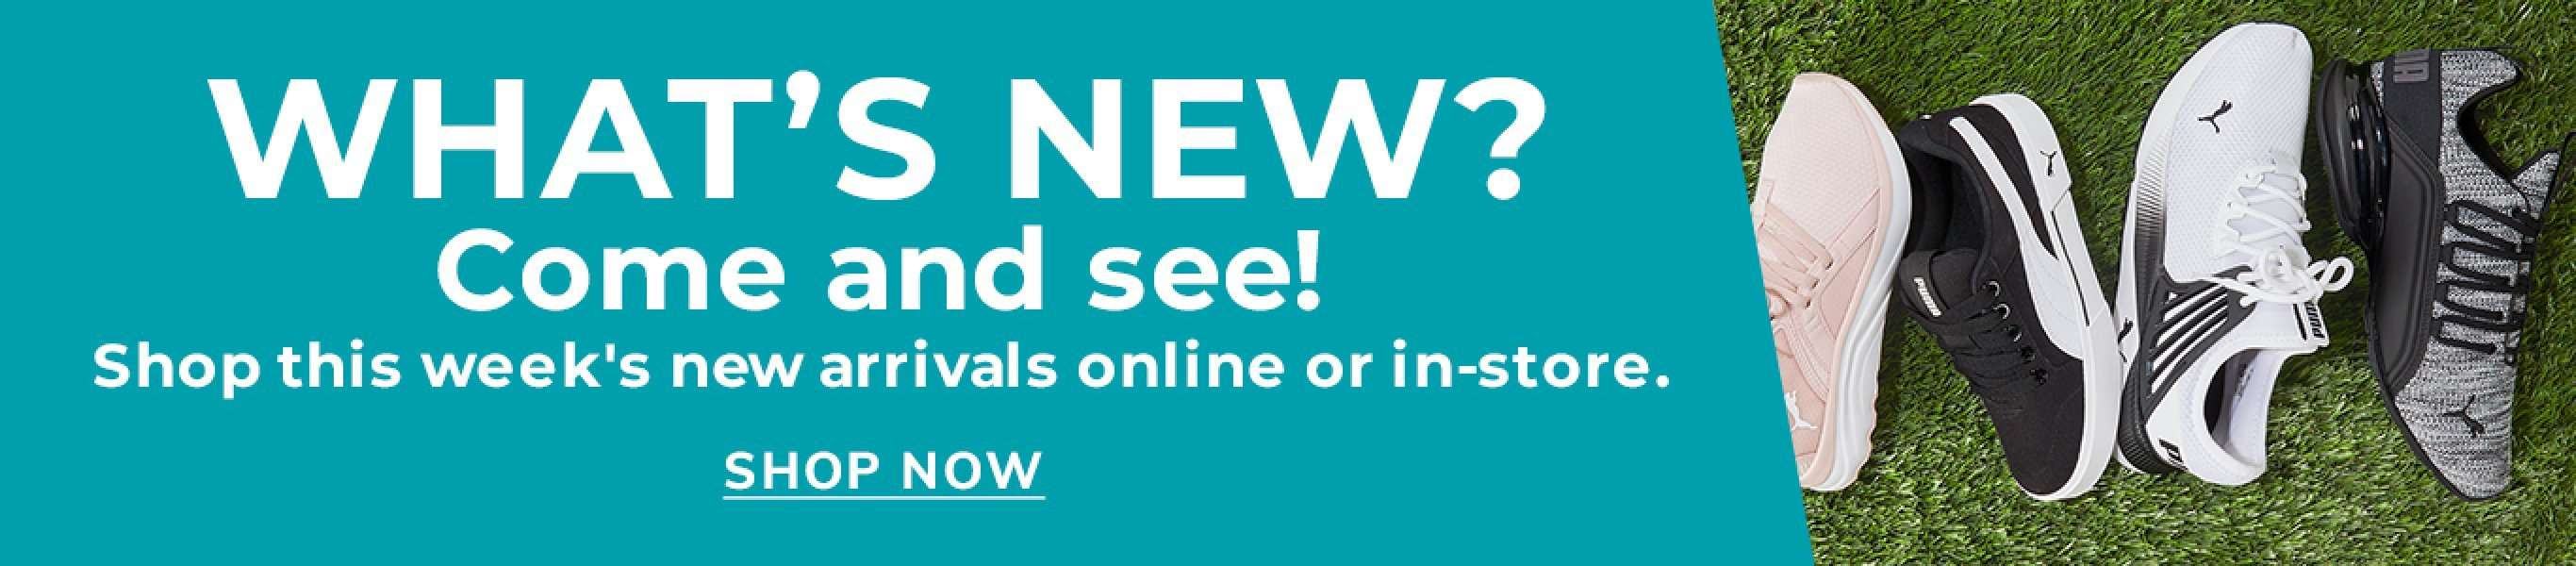 What's New? Come and see! Shop this week's new arrivals online or in-store. Shop Now